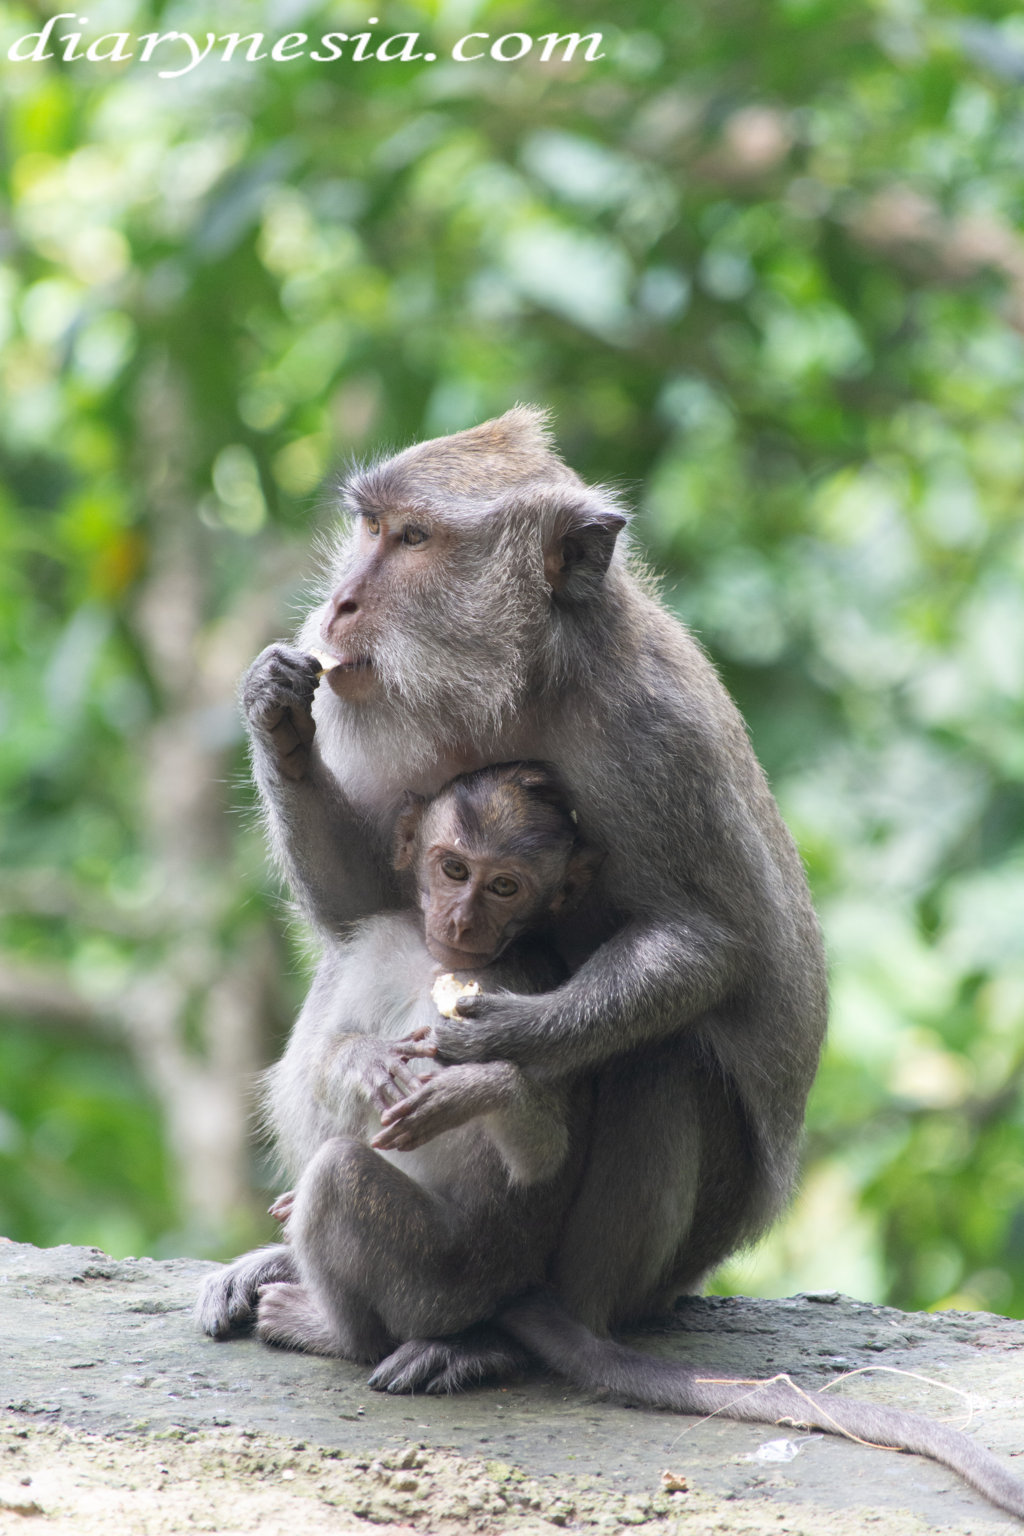 monkey forest pusuk tourism, lombok island tourism, best tourist destinations in lombok Indonesia, diarynesia